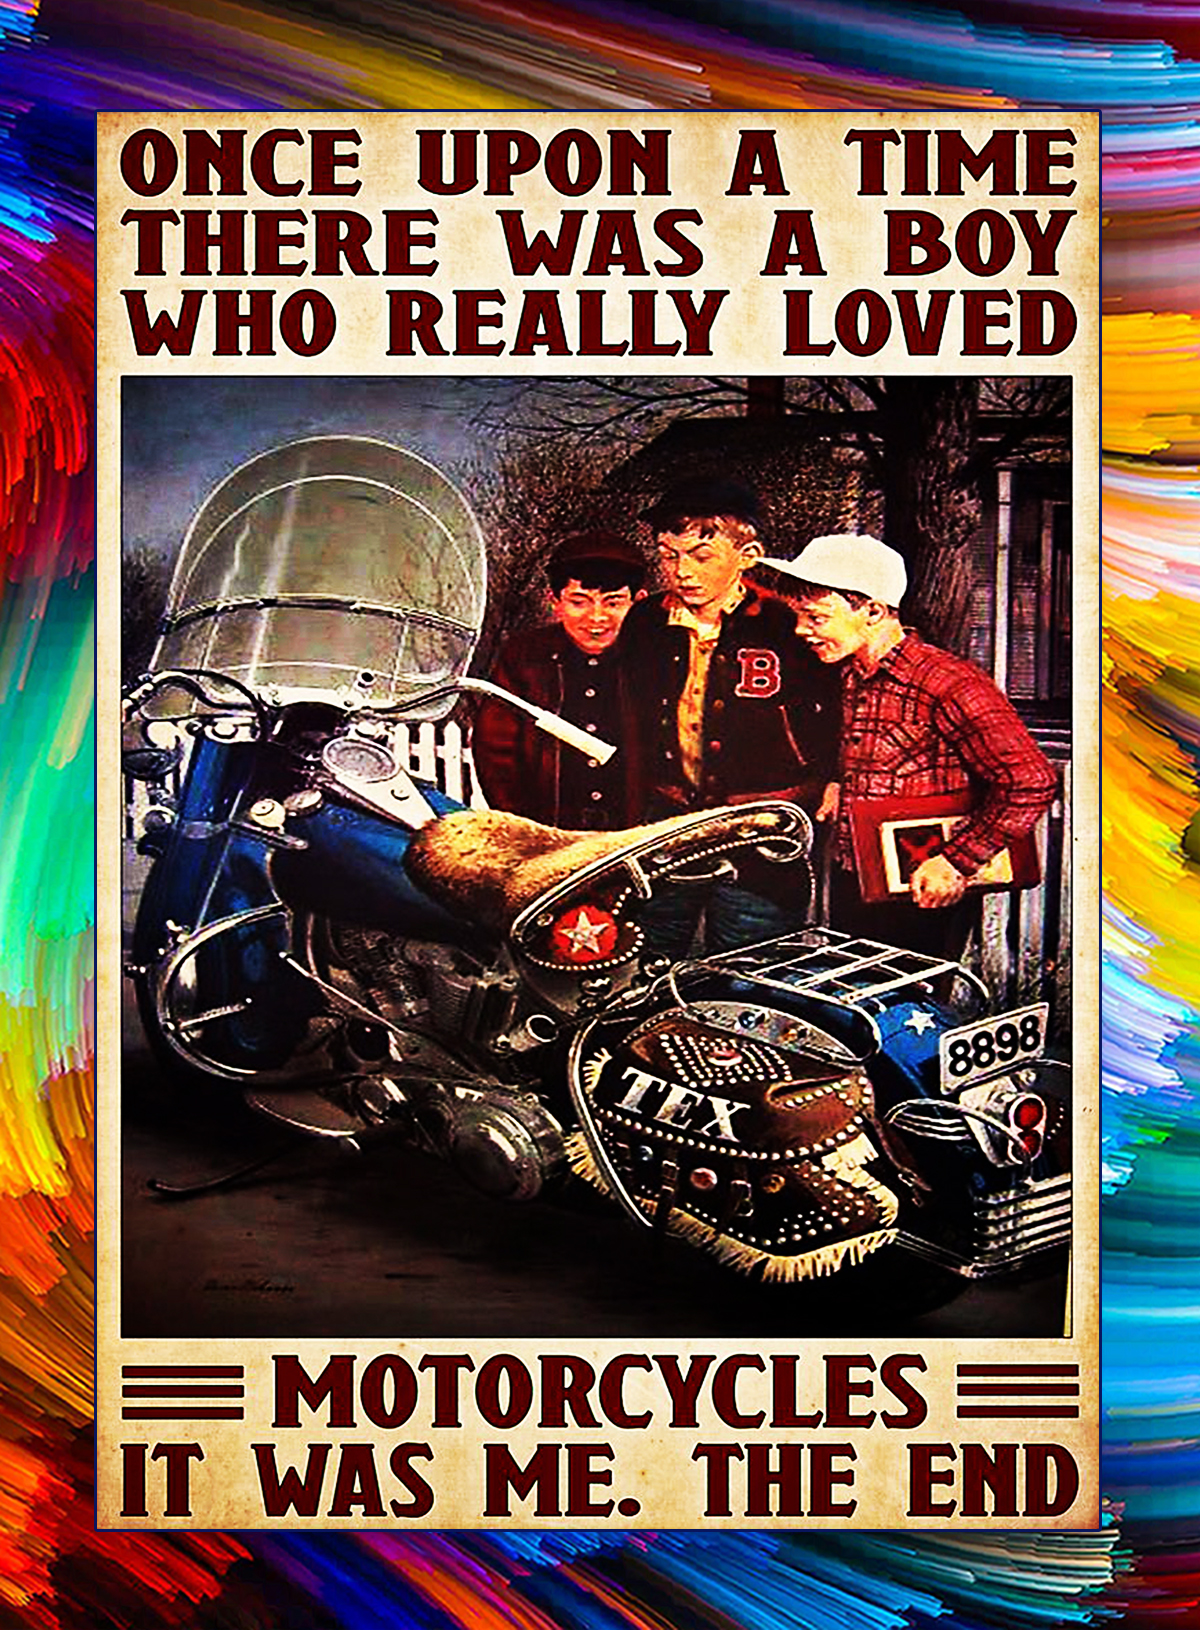 Once upon a time there was a boy who really loved motorcycles poster - A4